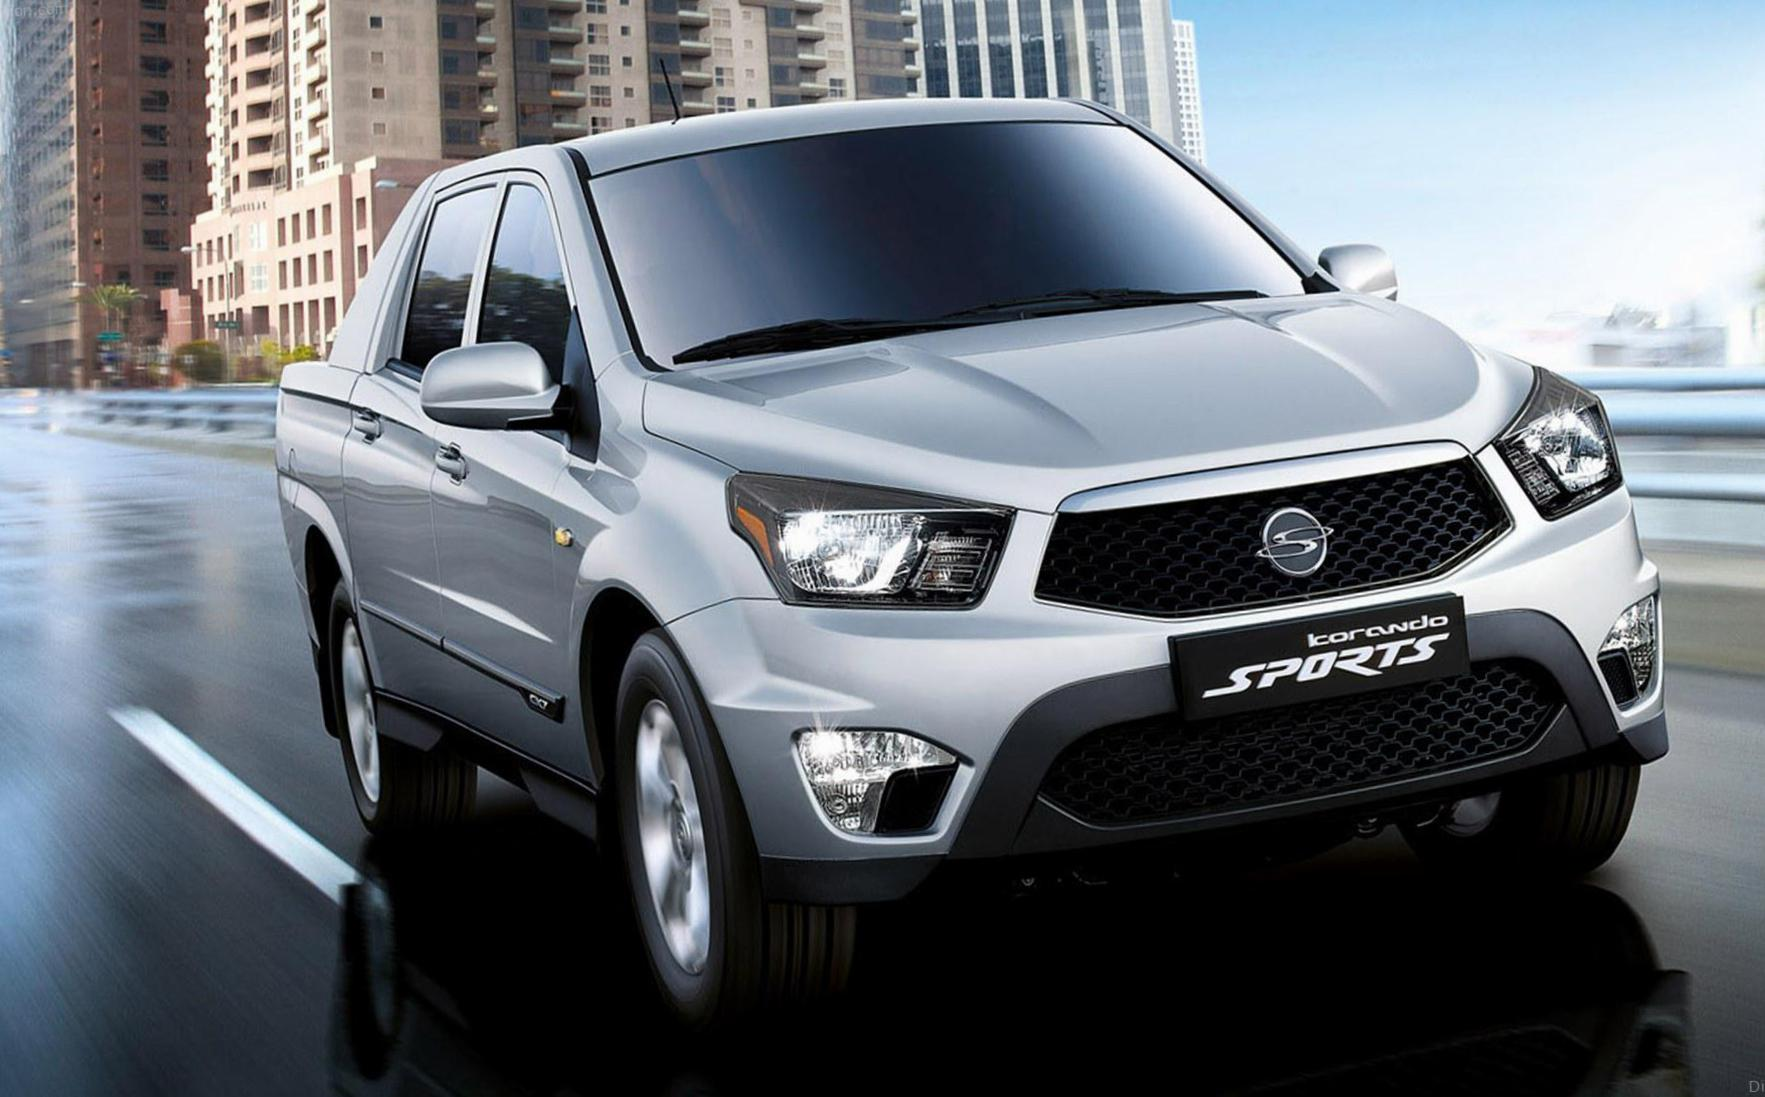 Korando SsangYong Specification 2009